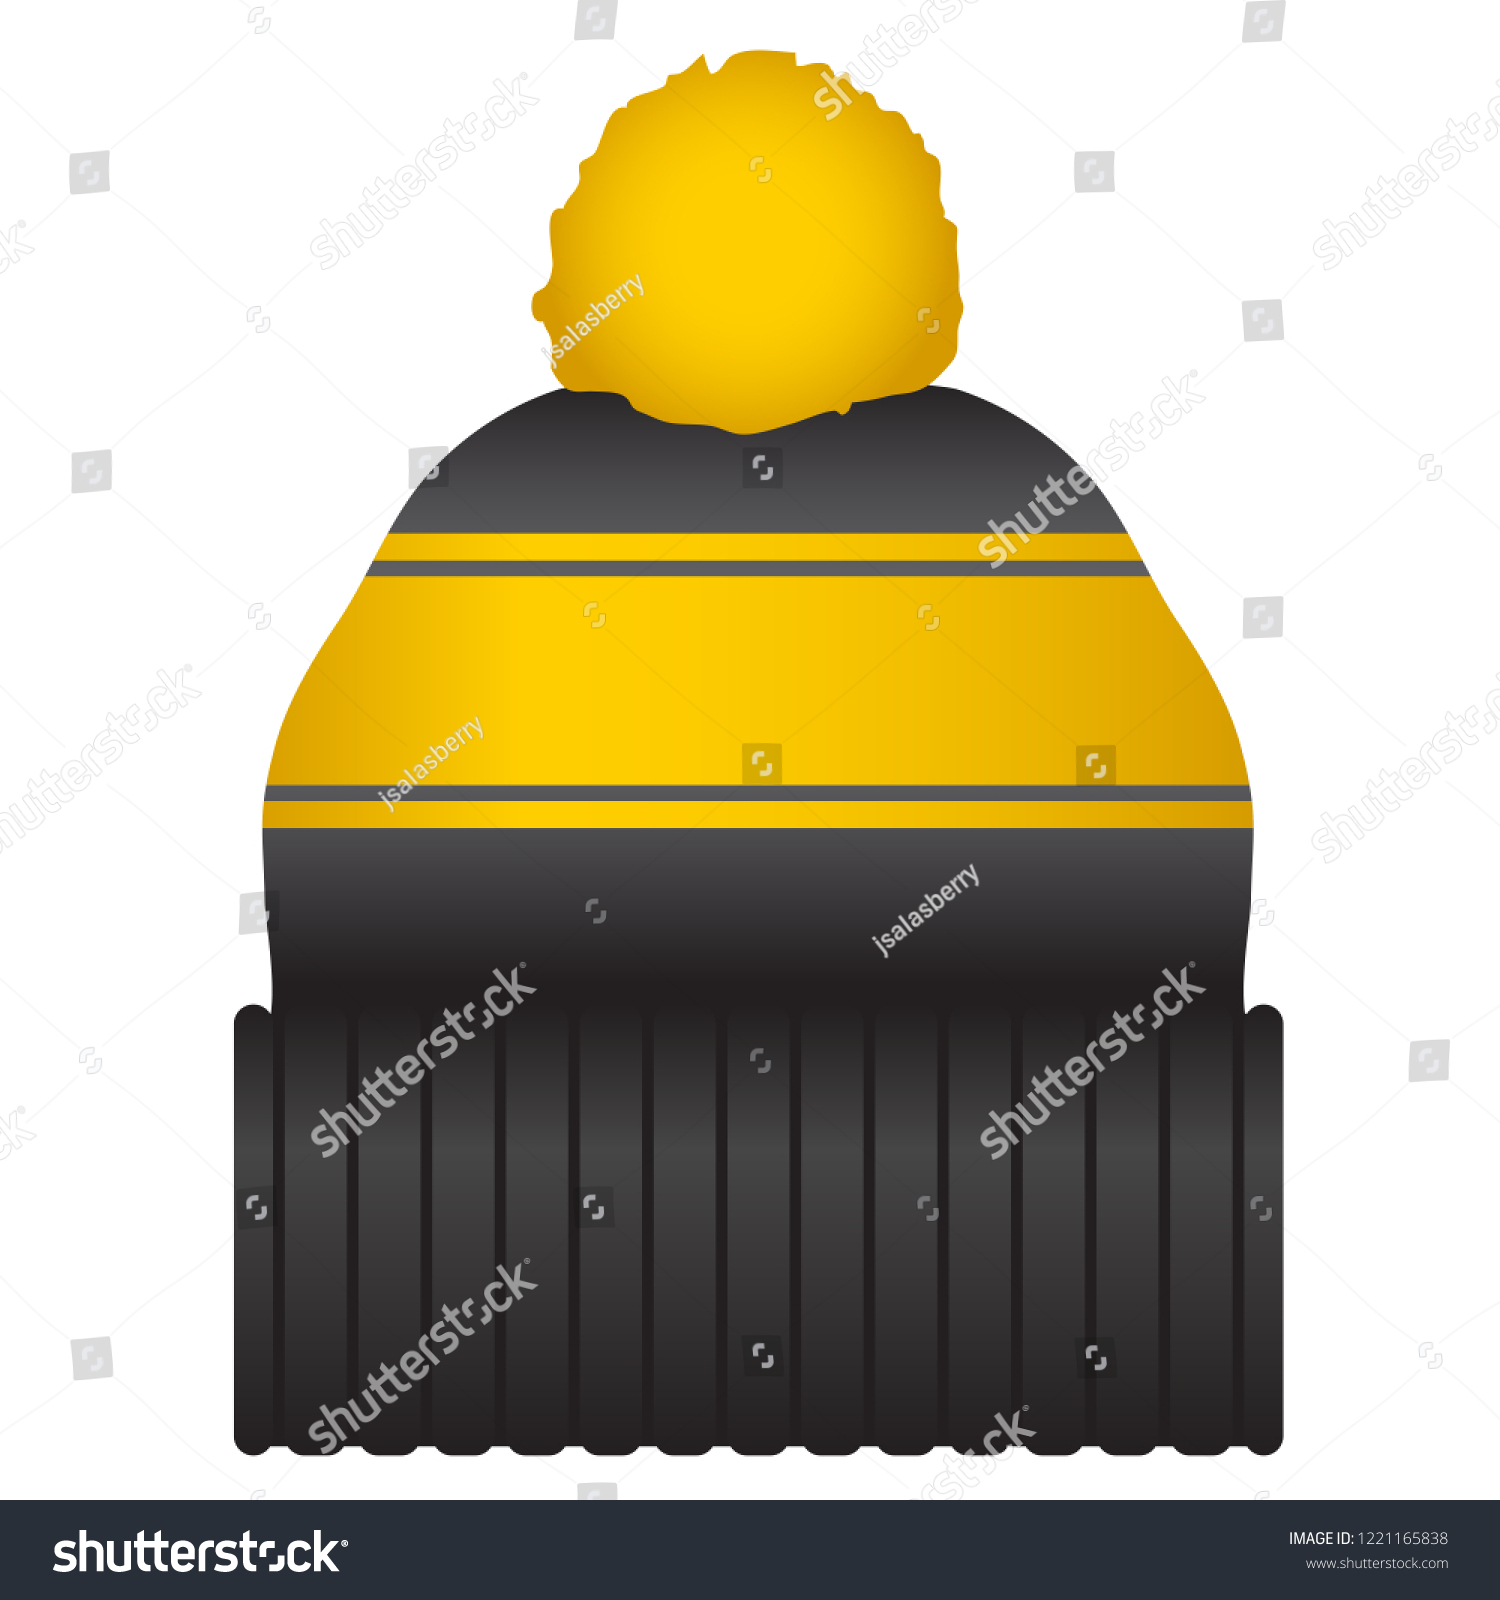 Black and Gold Puff Ball Stocking Cap Beanie Hat Vector Icon Illustration eccfd8cd929